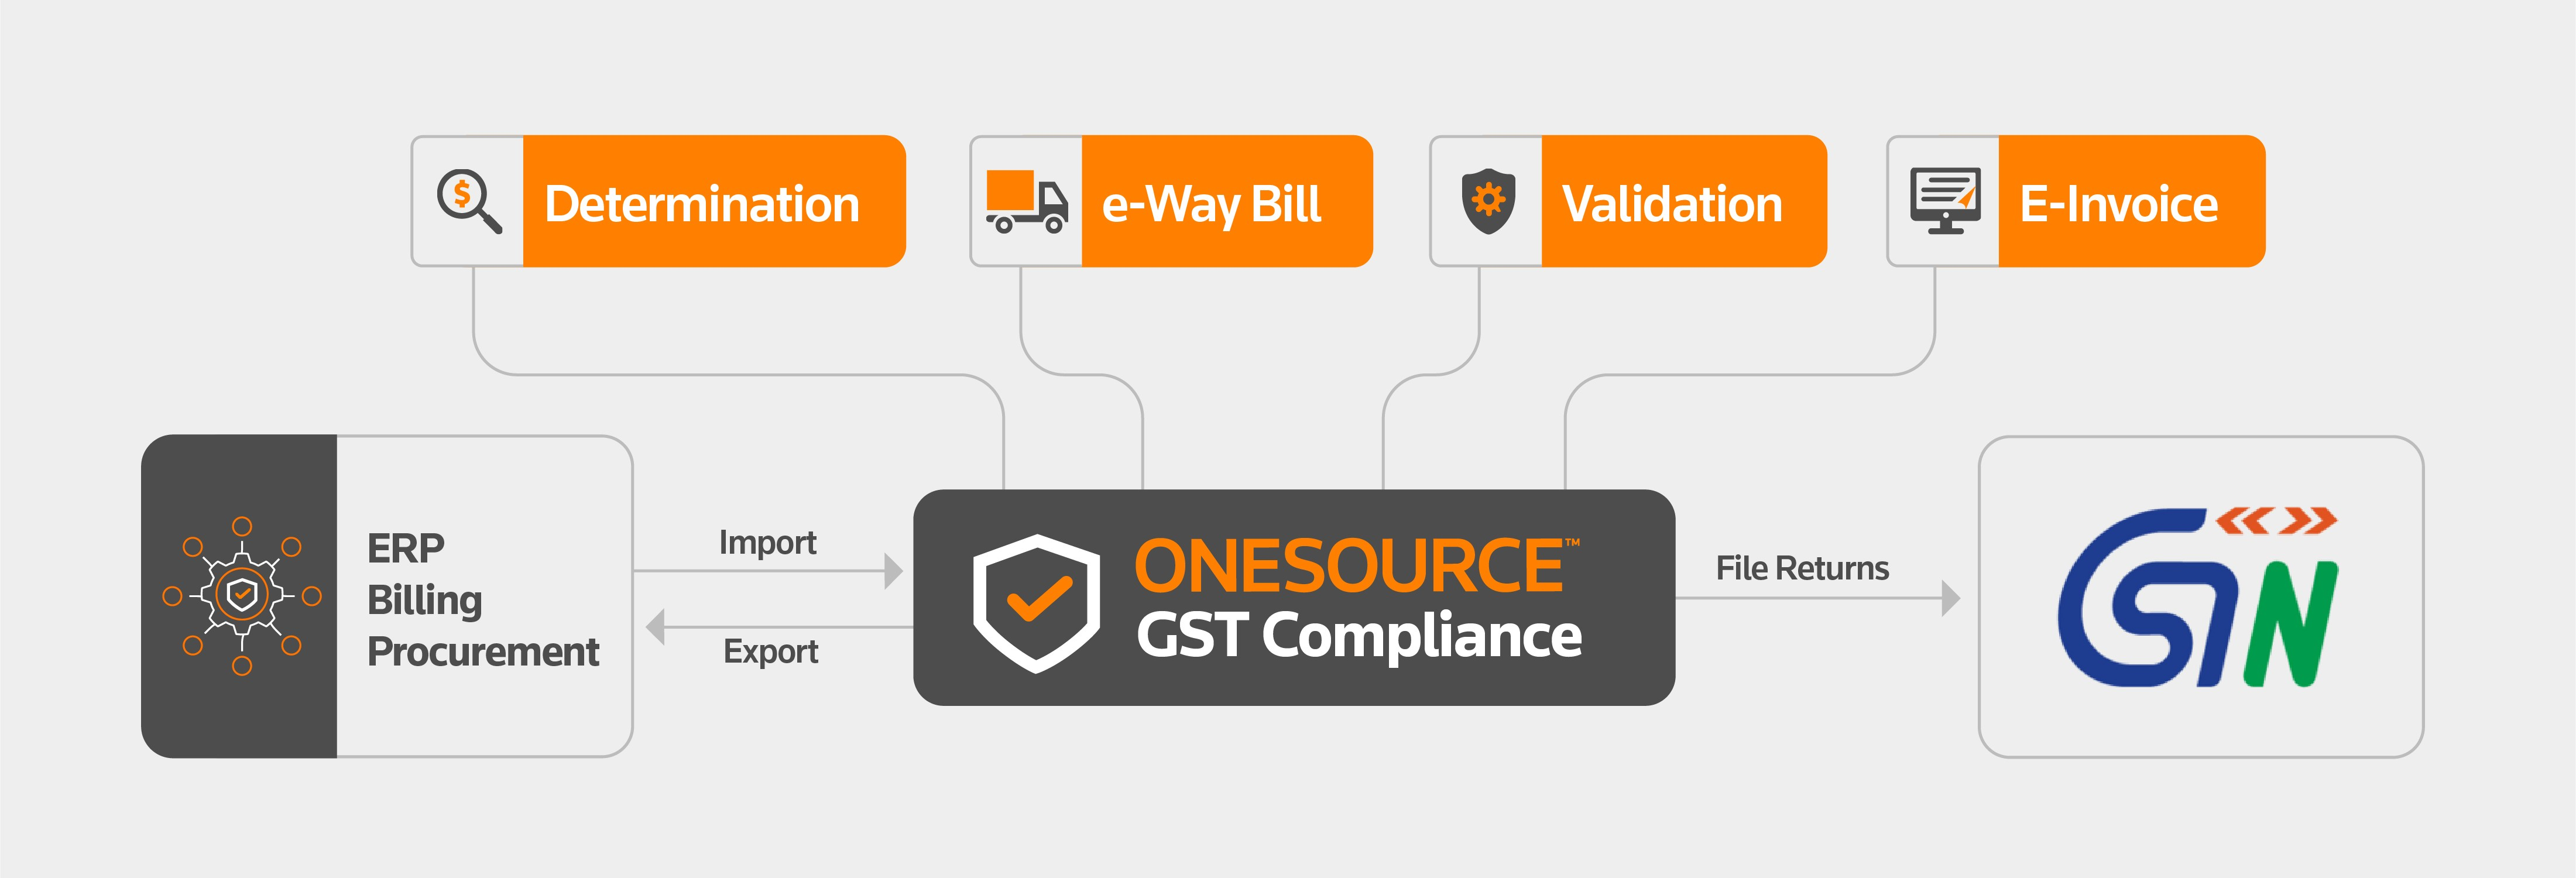 Thomson Reuters ONESOURCE, built for India GST regime, is the best-in-class tax technology which can directly integrate with your ERP's, generate e-invoices, validate data and populate your GST returns.